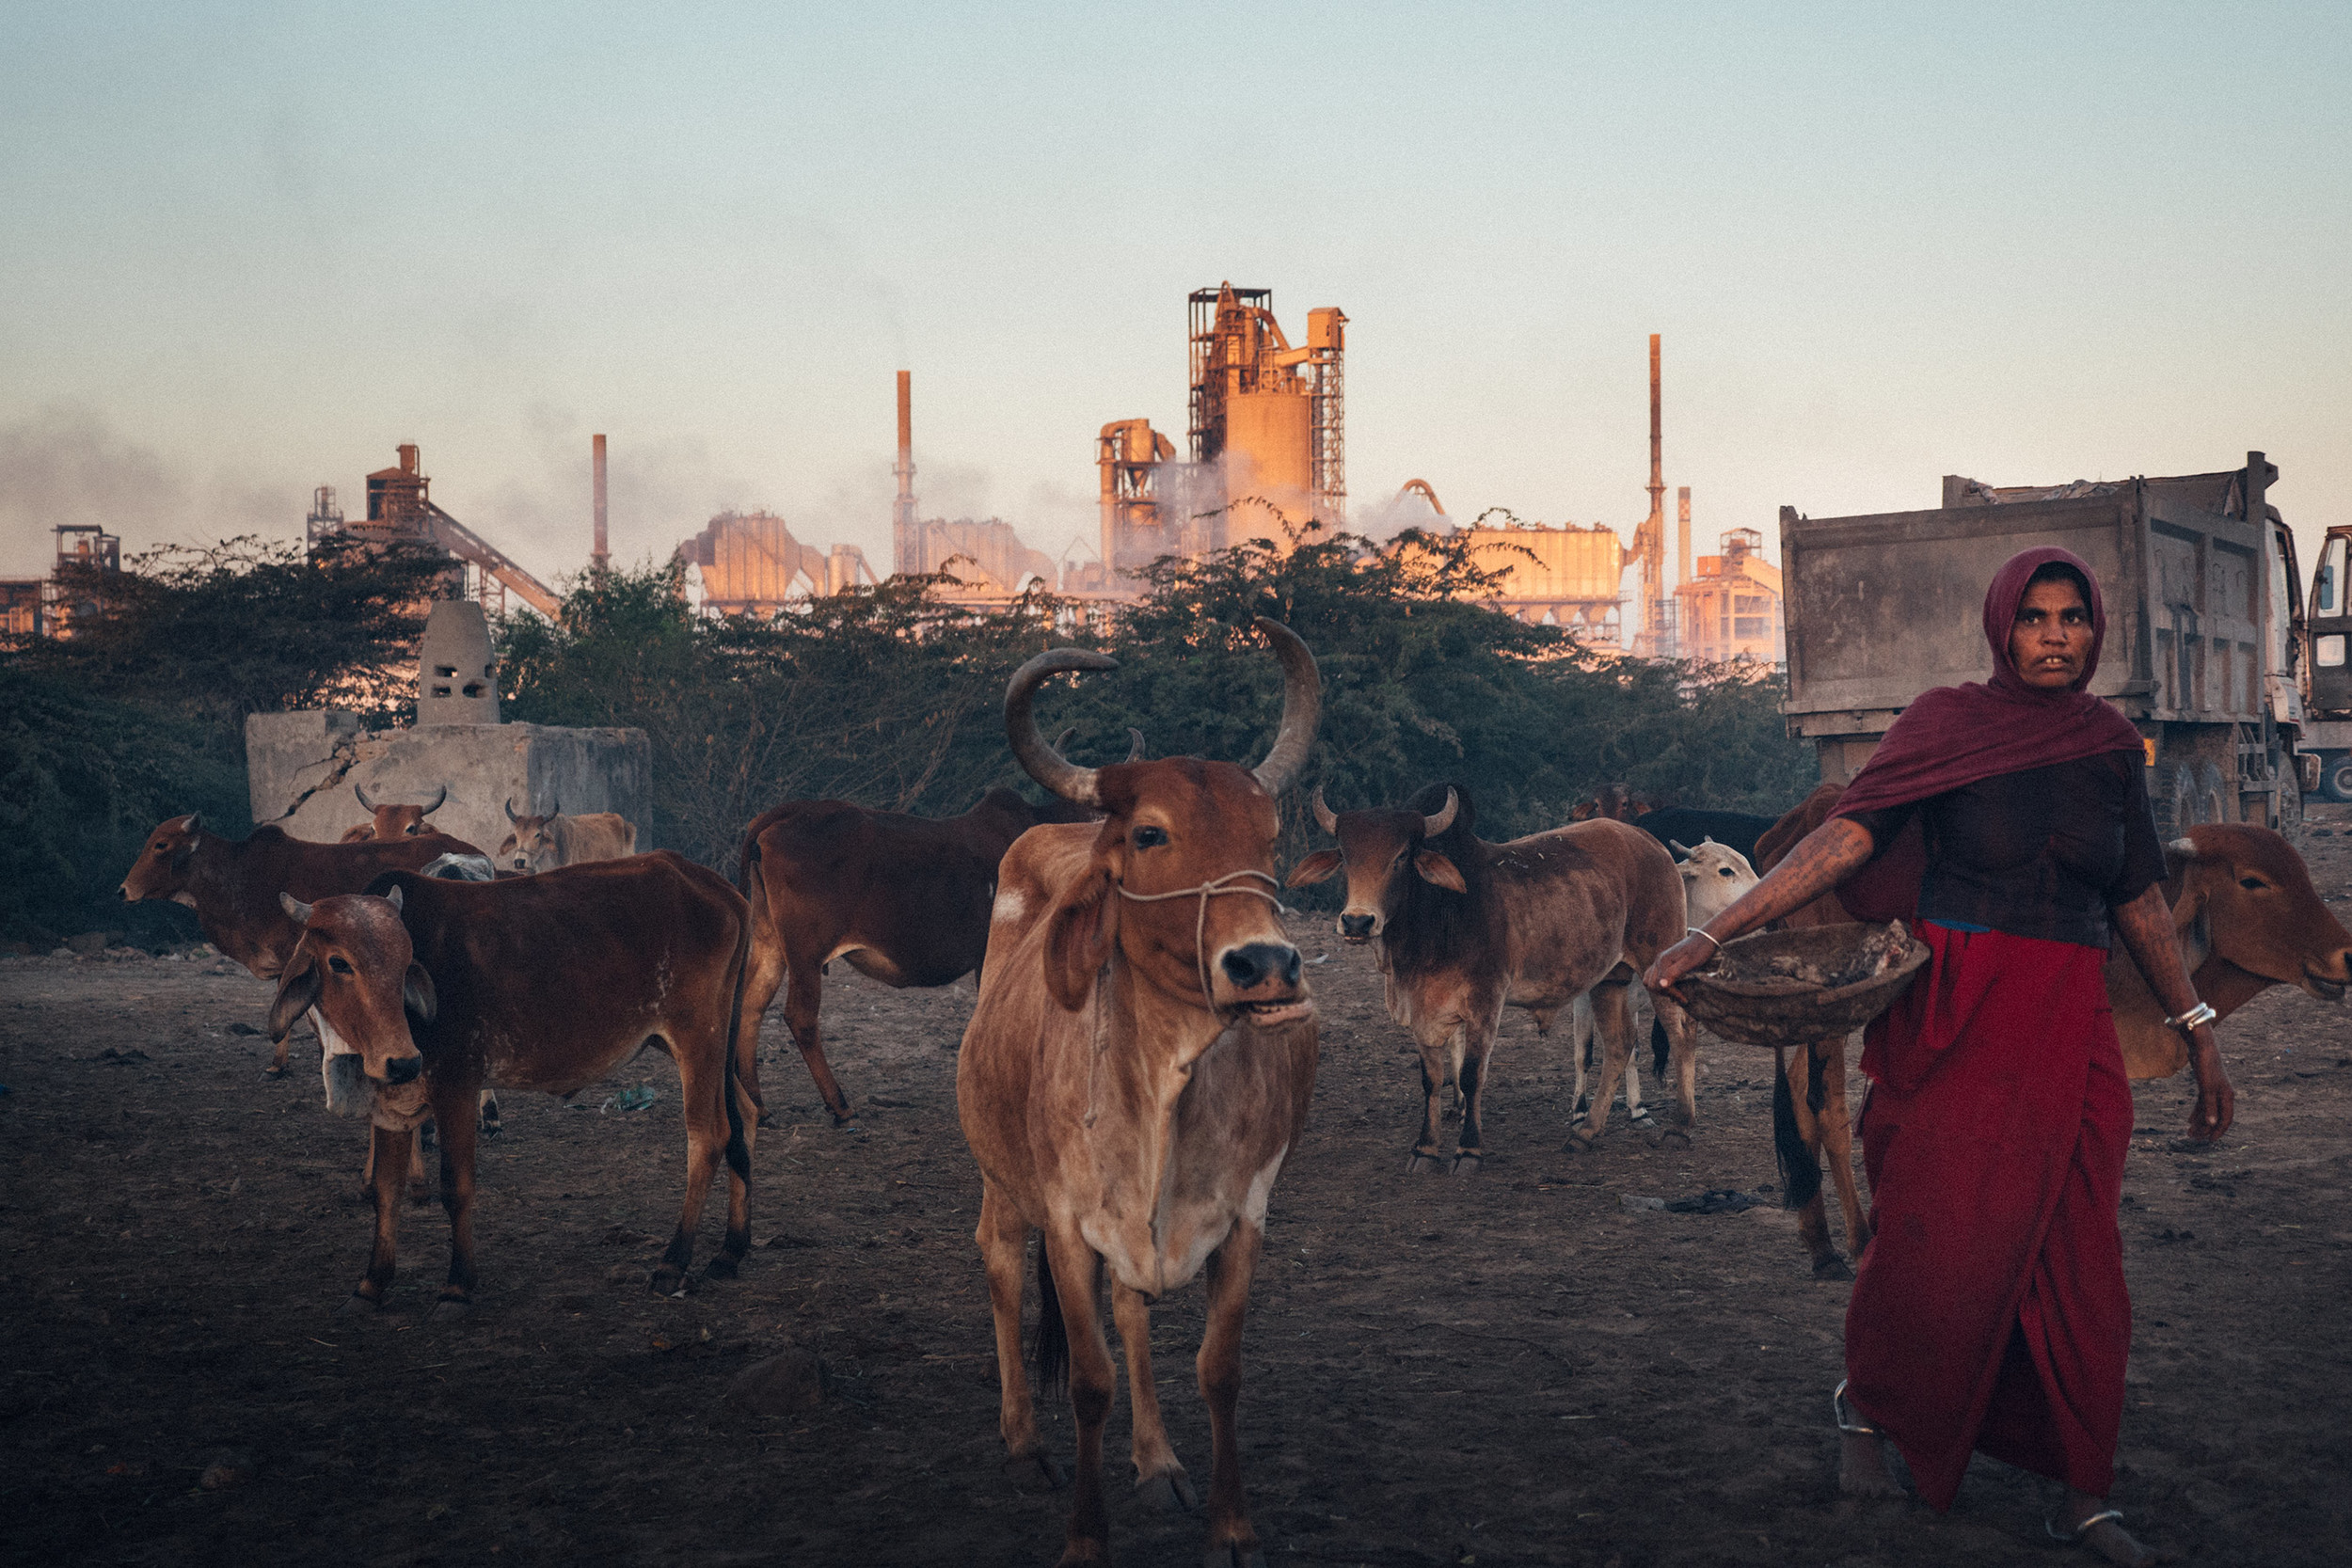 Village woman in front of the chemical plant